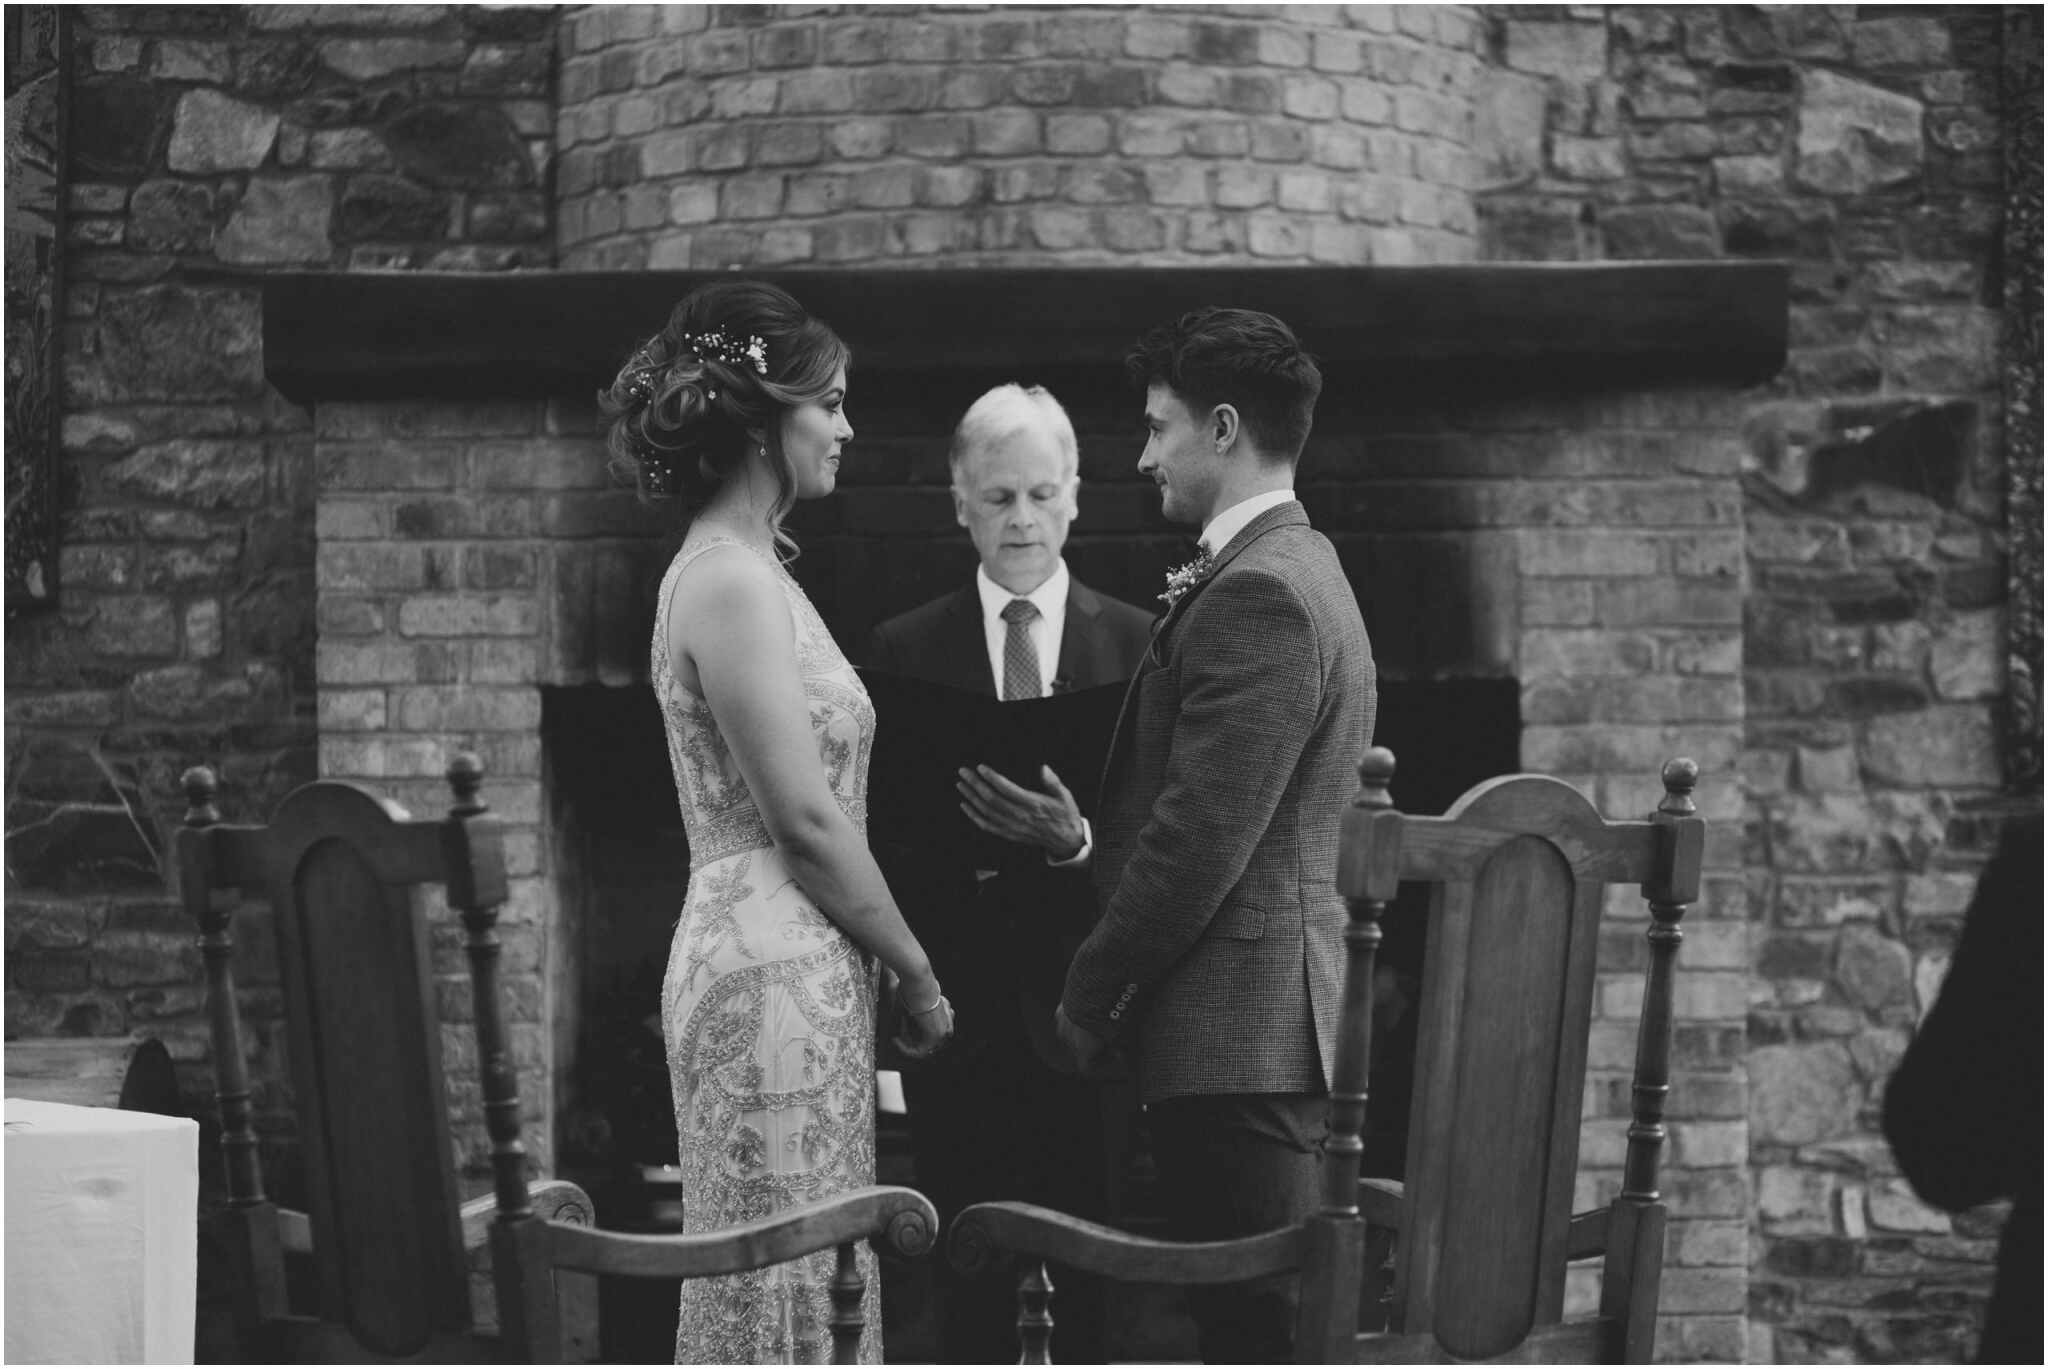 Barberstown castle Ireland Irish Castle Wedding00096 - Fun and Relaxed wedding and elopement photography in Ireland, perfect for adventurous and outdoorsy couples